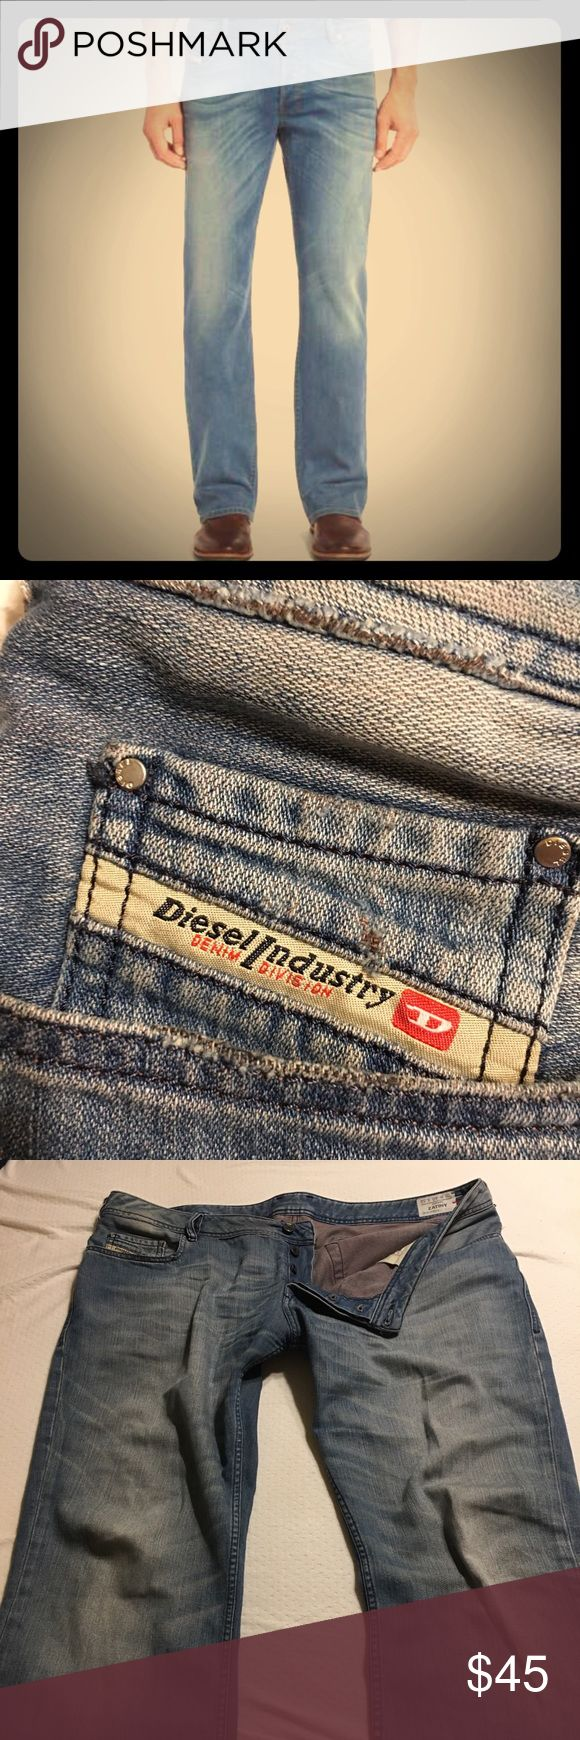 Men's Diesel ZATINY Button-Fly Jeans $239 Retail Men's Diesel ZATINY Mid Rise Jeans! 40x32 Button-Fly Medium Wash Made In Italy $239 at Nordstrom. Gently used.  SIZE INFO  Mid rise. True to size. Comfortable through the seat and thigh. Widens from the calf to ankle.  DETAILS & CARE  DIESEL's modern bootcut jeans are slim in the thighs with a natural flare that sits nicely over boots. Italian-made soft-stretch denim style is prominently sanded and whiskered for a natural, well-worn look that…